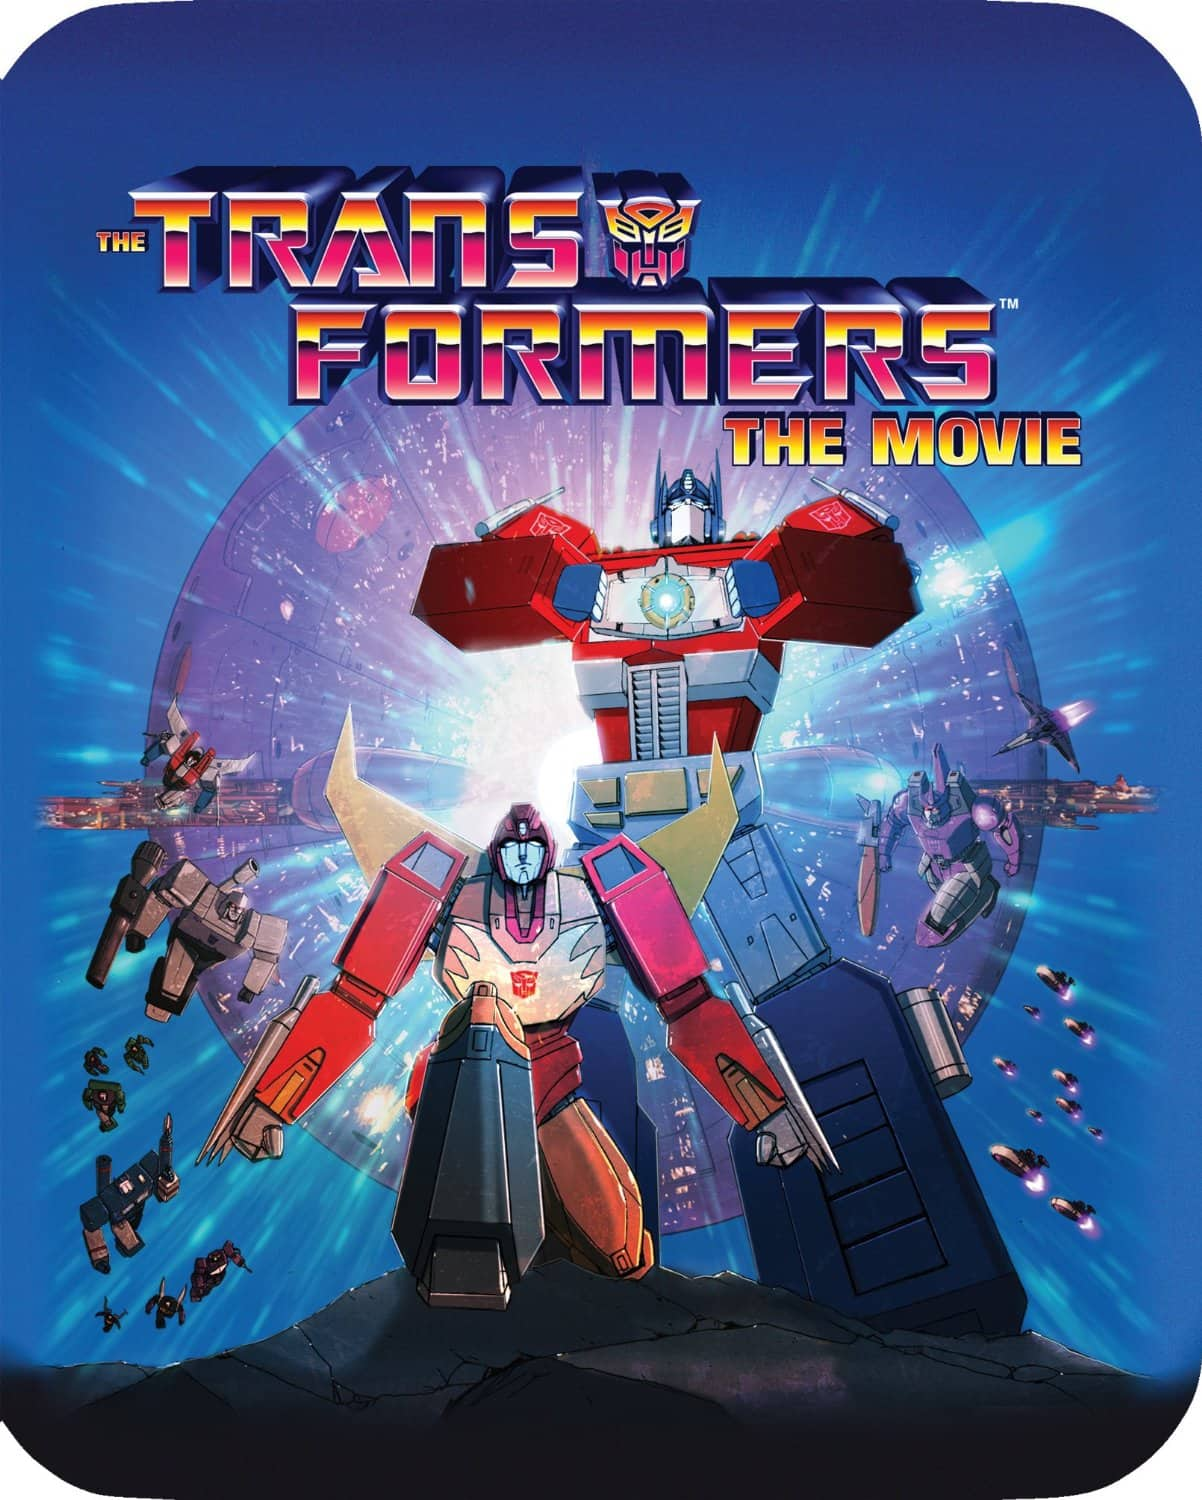 Transformers: The Movie (Limited Edition 30th Anniversary Steelbook) [Blu-ray] $19.99 at amazon and bestbuy (preorder)